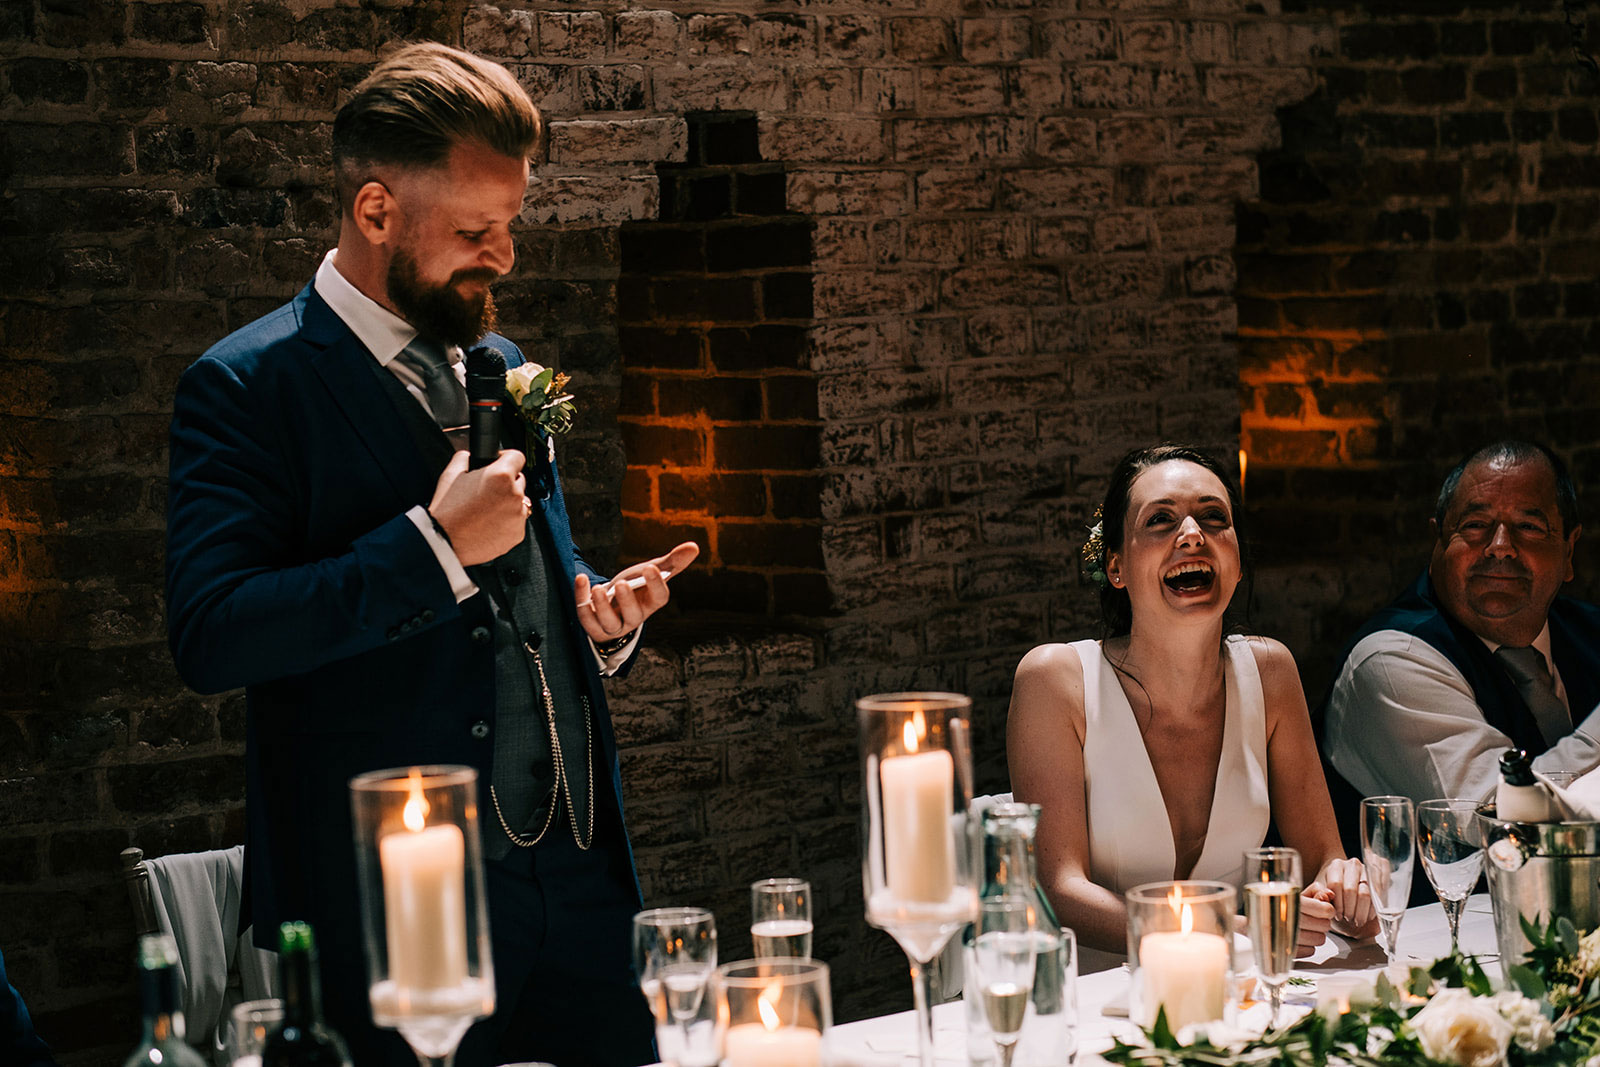 Jack makes Jacquie laugh during his speech